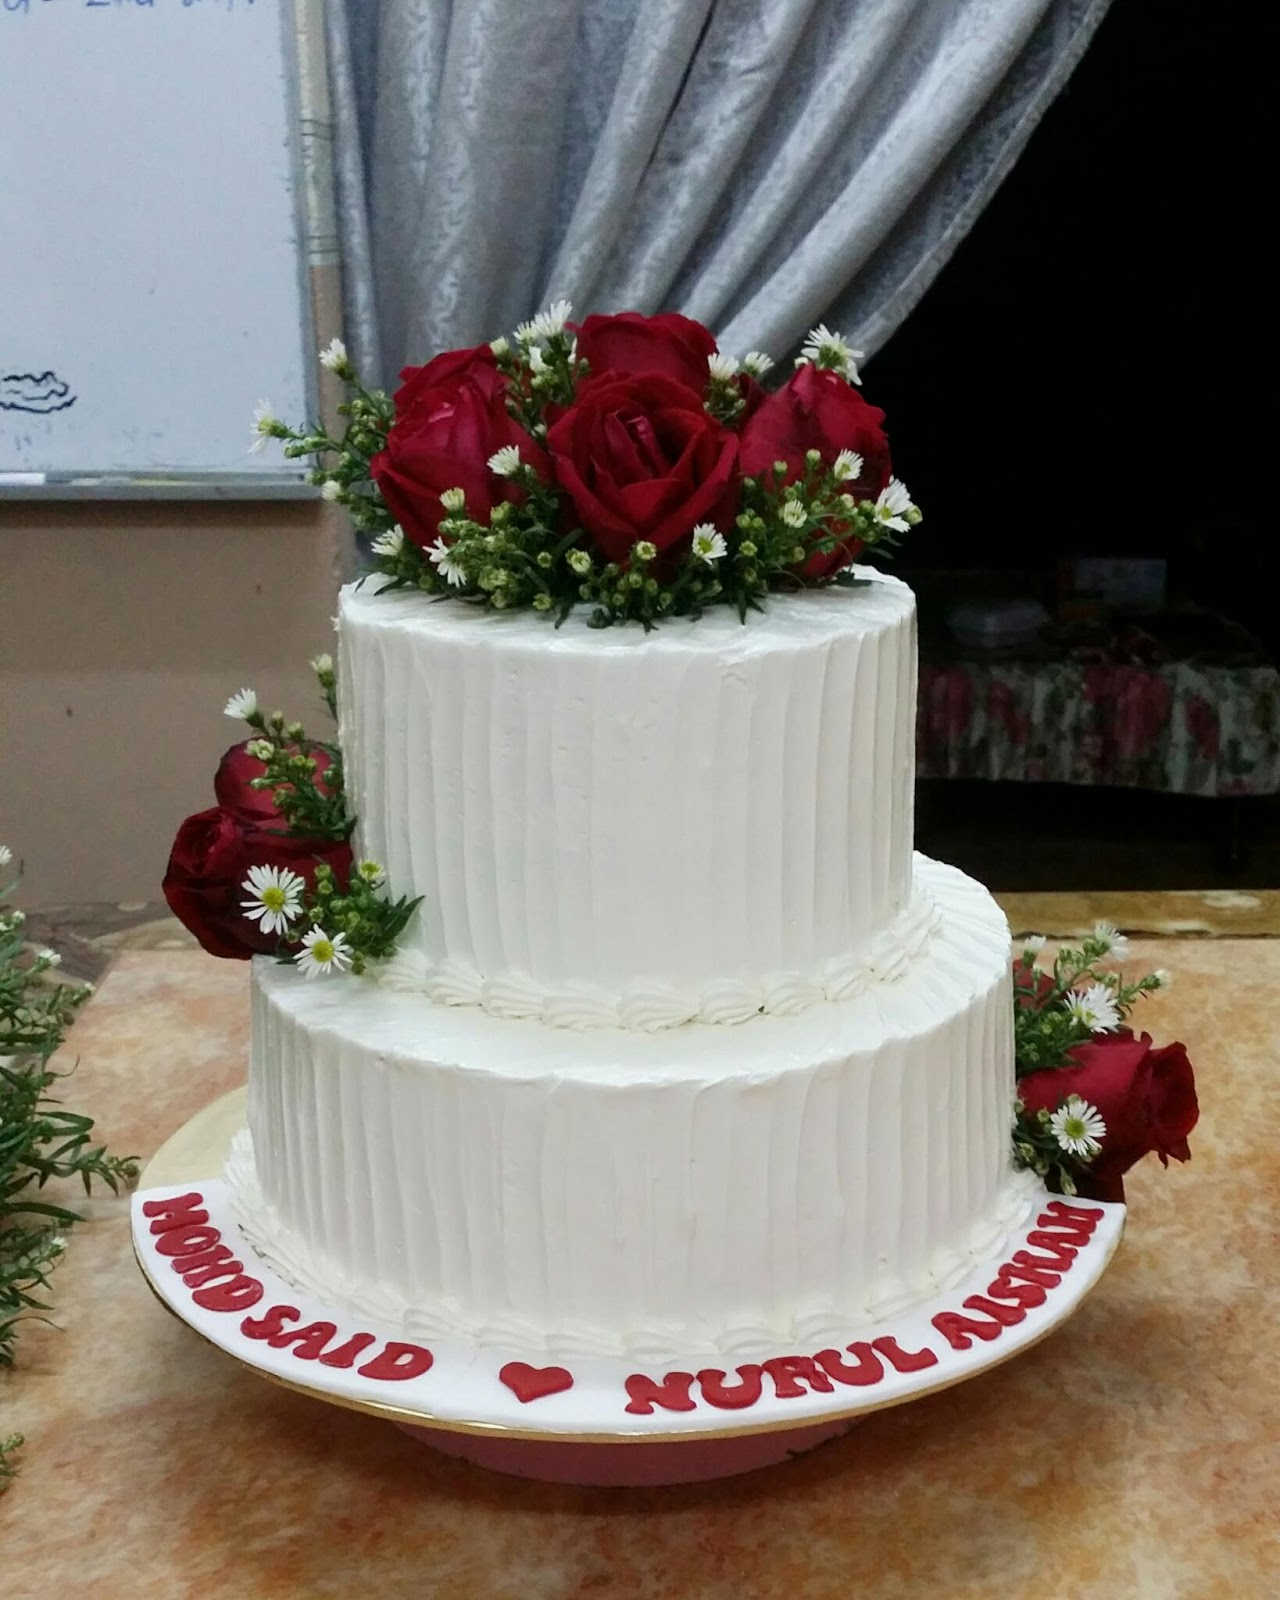 Jasmeen Home Delight: 2tier wedding cake - red fresh roses